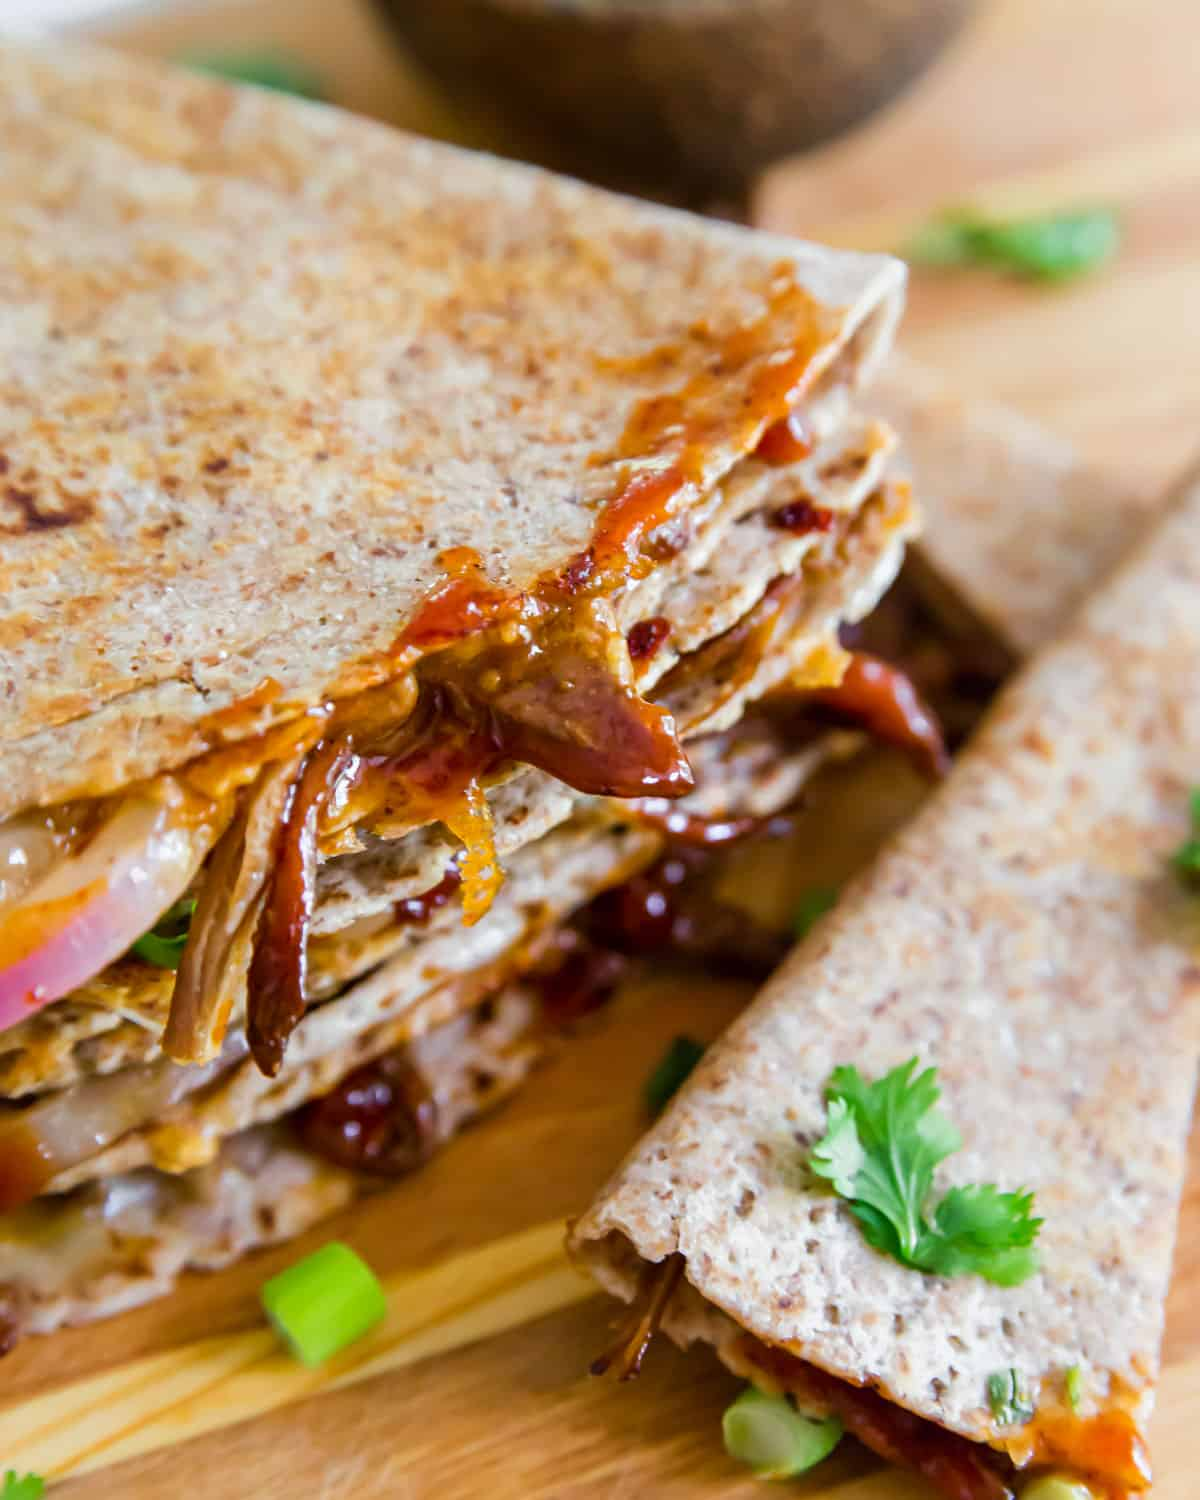 Use up leftover brisket in this simple brisket quesadilla recipe with BBQ sauce, red onions and cheddar cheese.